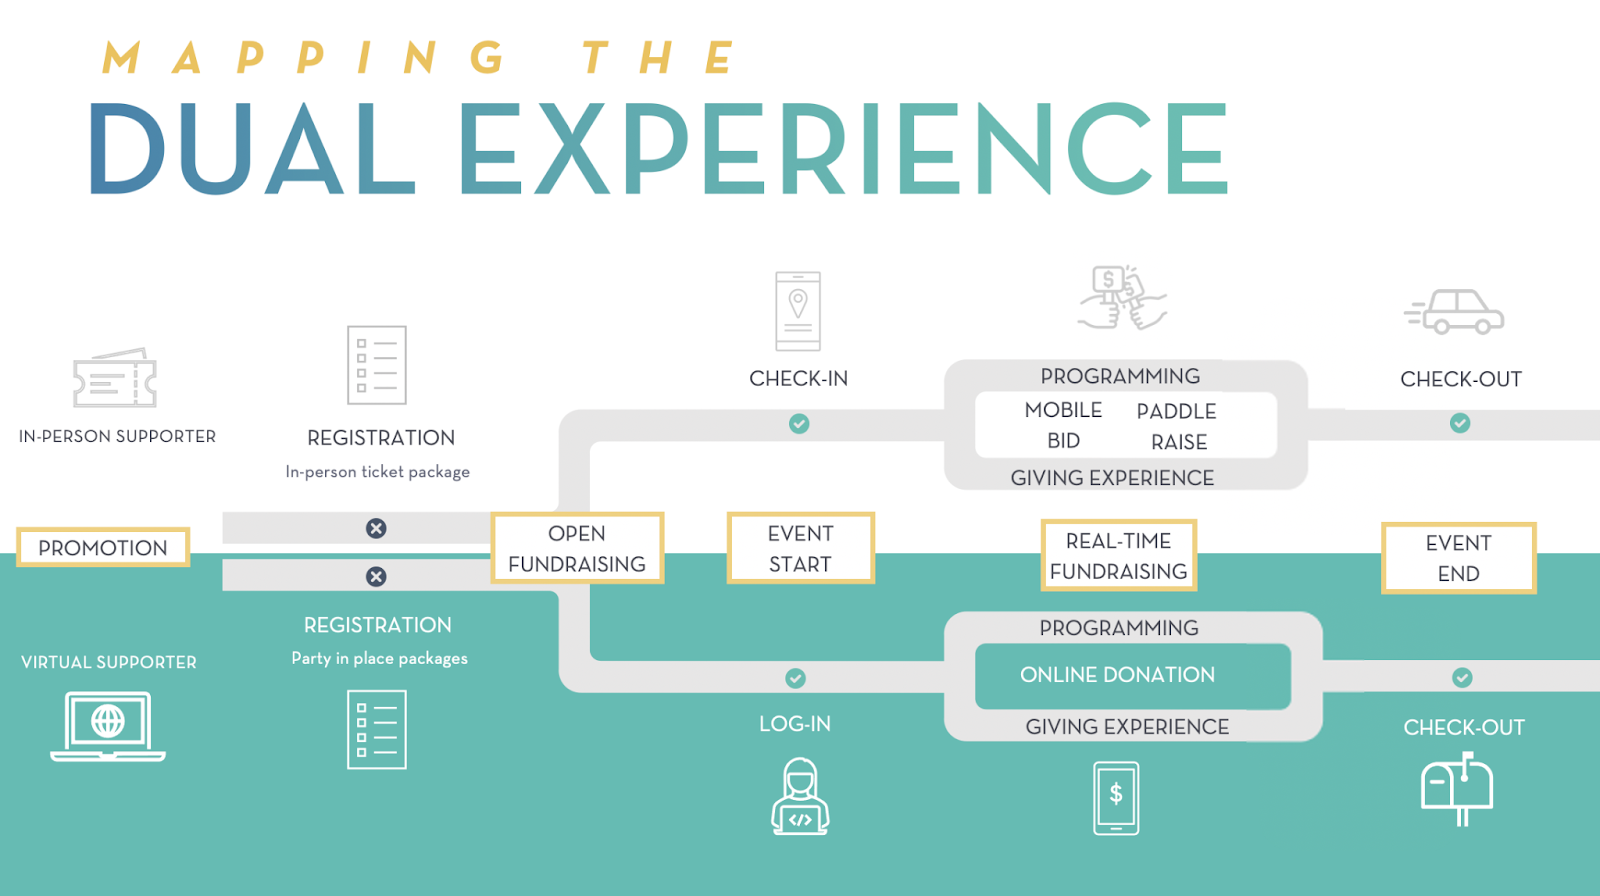 Learn more about how hybrid events offer dual experiences!